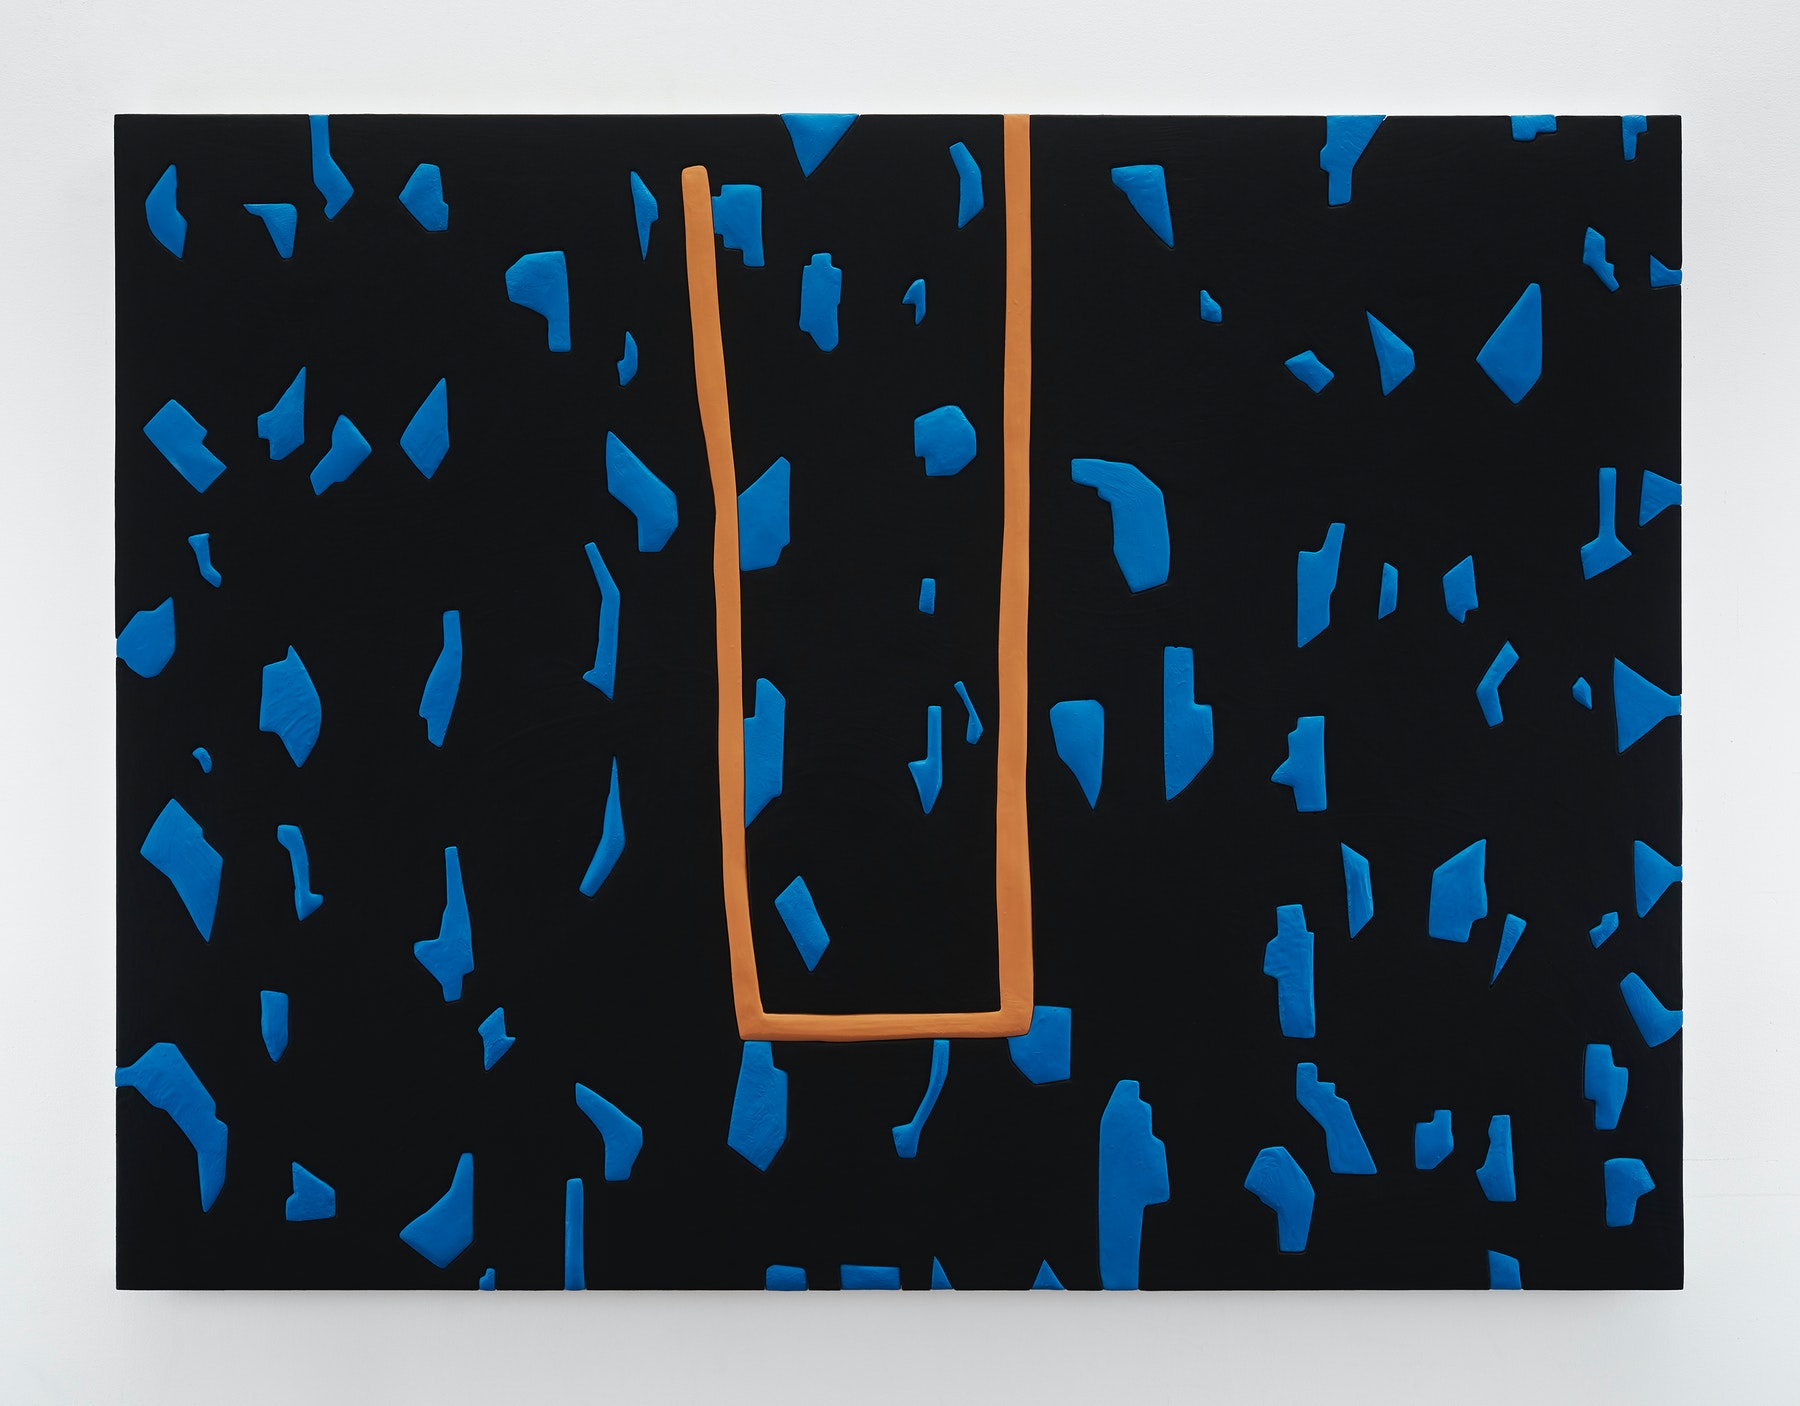 "Sadie Benning ""Untitled 9,"" 2019 Wood, aqua resin, casein, and acrylic gouache 53 x 71"" [HxW] (134.62 x 180.34 cm) Inventory #BEN863 Courtesy of the artist and Vielmetter Los Angeles Photocredit: Chris Austin"